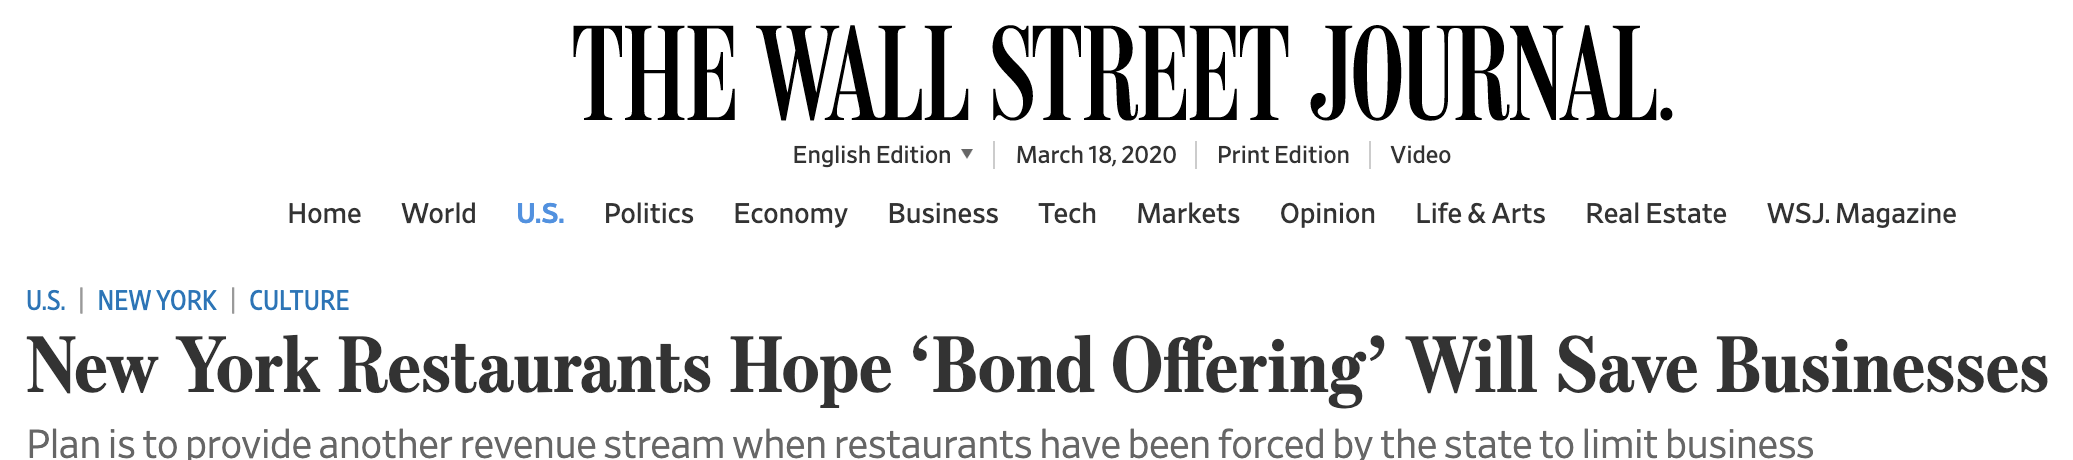 Wall Street Journal article - eReleases press release service Dining Bond Case Study